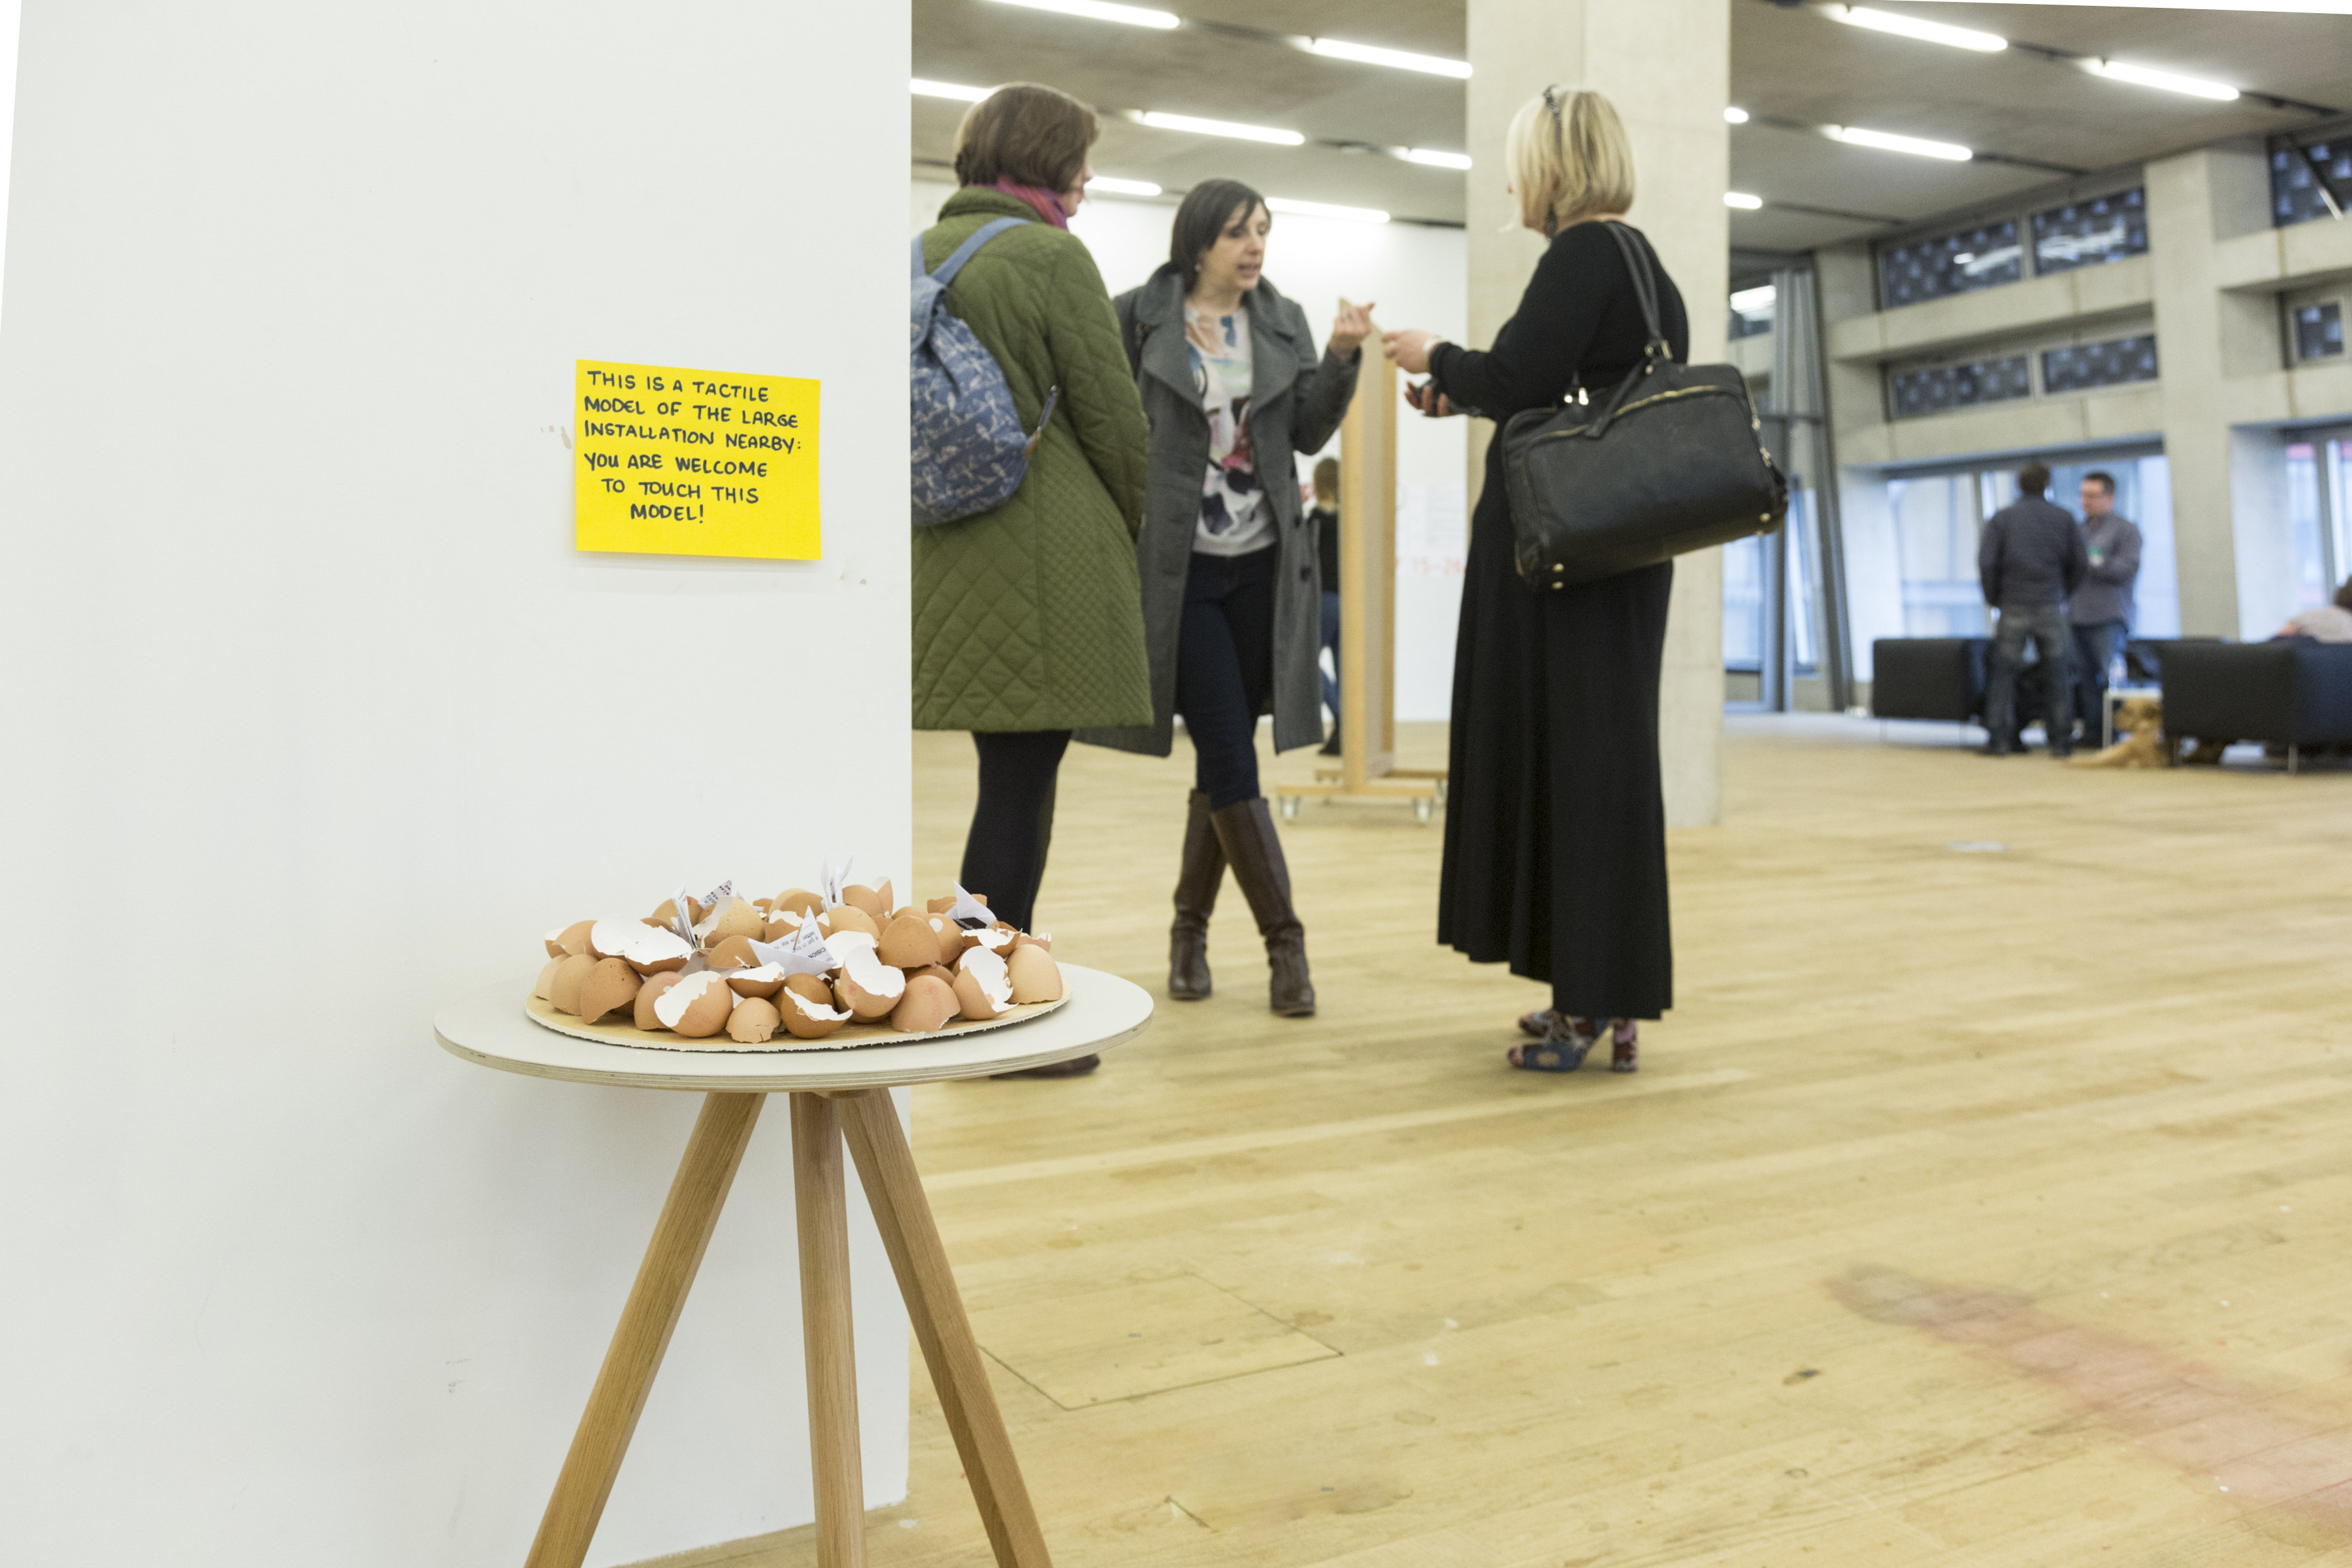 in the foreground, under a curatorial notice, a plate of eggshells acts as a model for touch exploring the larger eggshell installation it sits adjacent to, although the installation is out of the picture; in the background three woman are talking